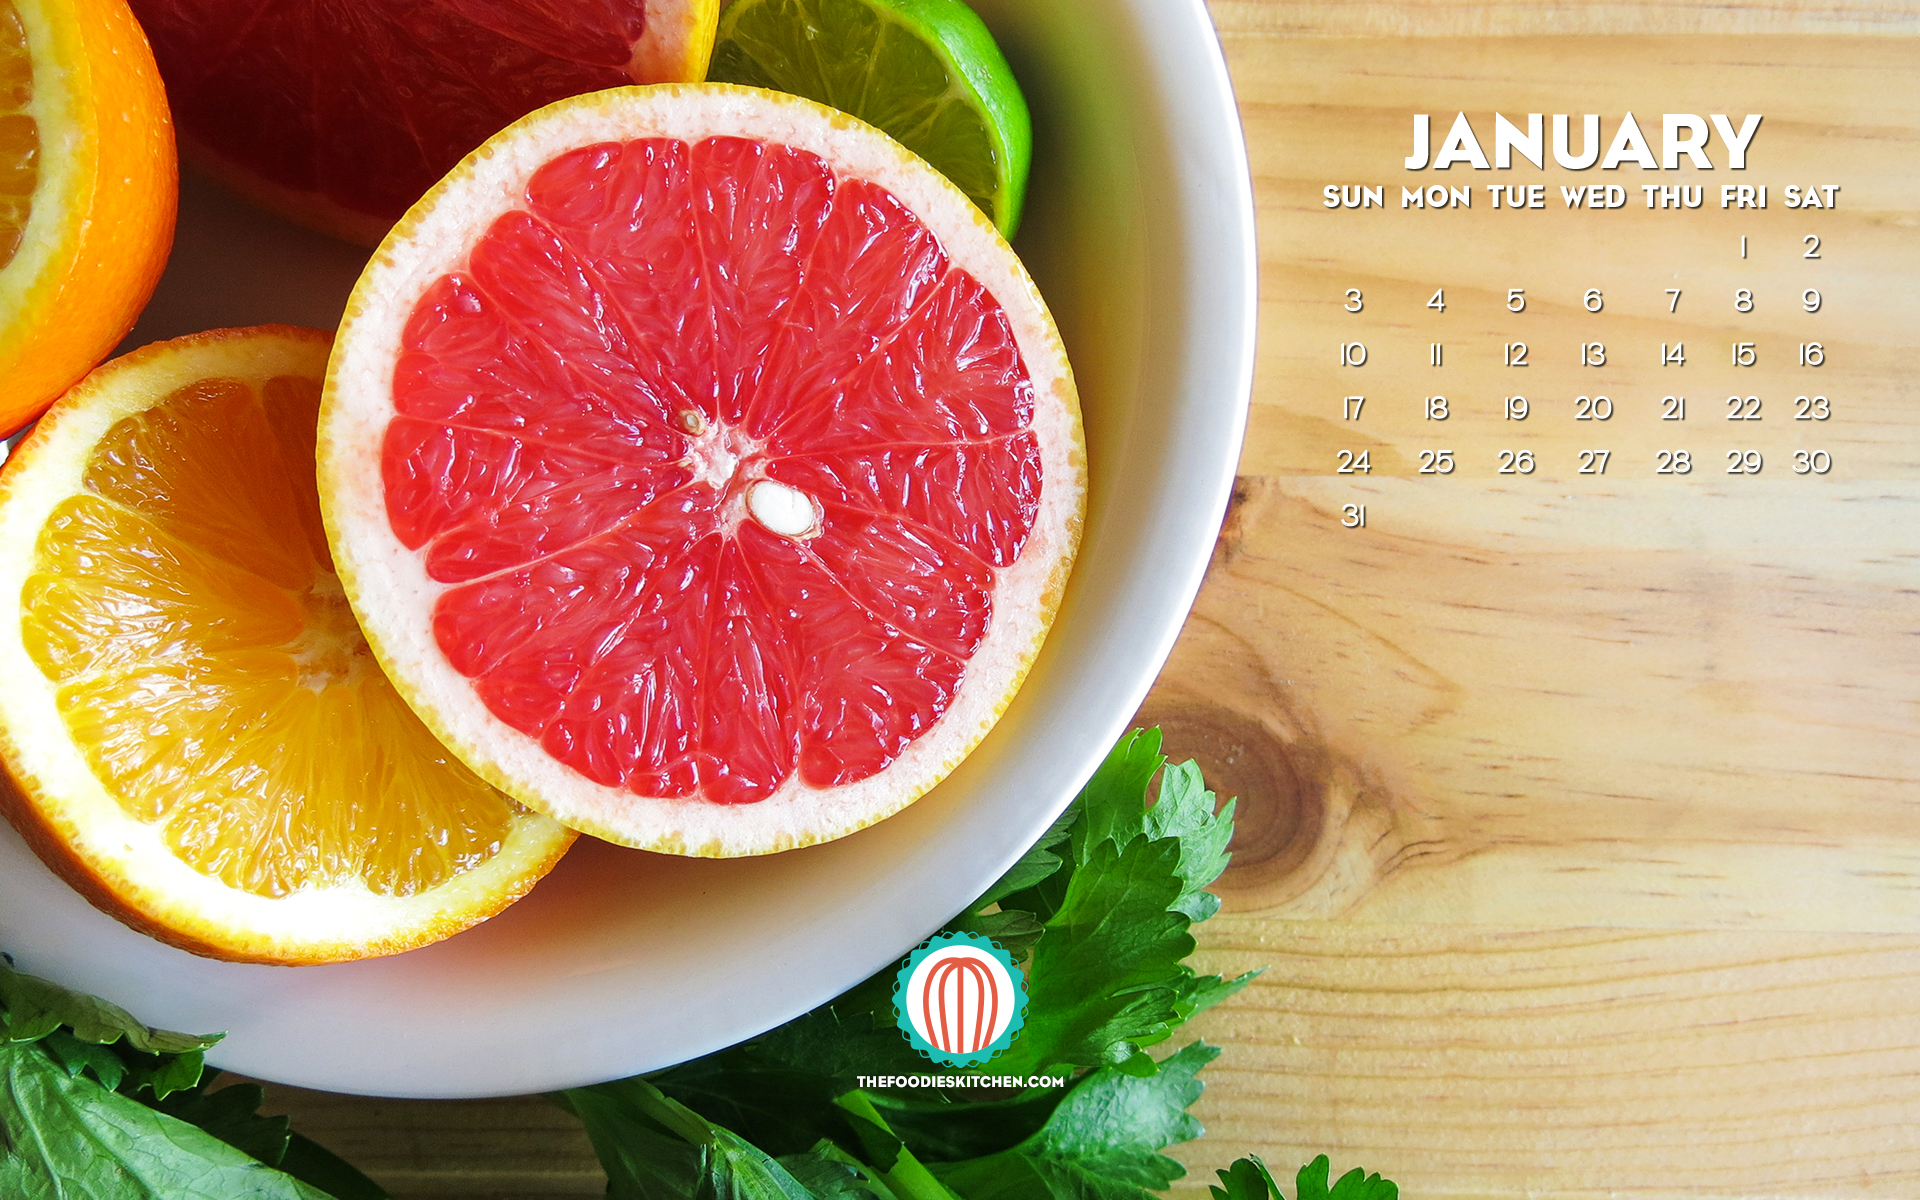 Foodies Freebie January 2016 Wallpaper Collection The